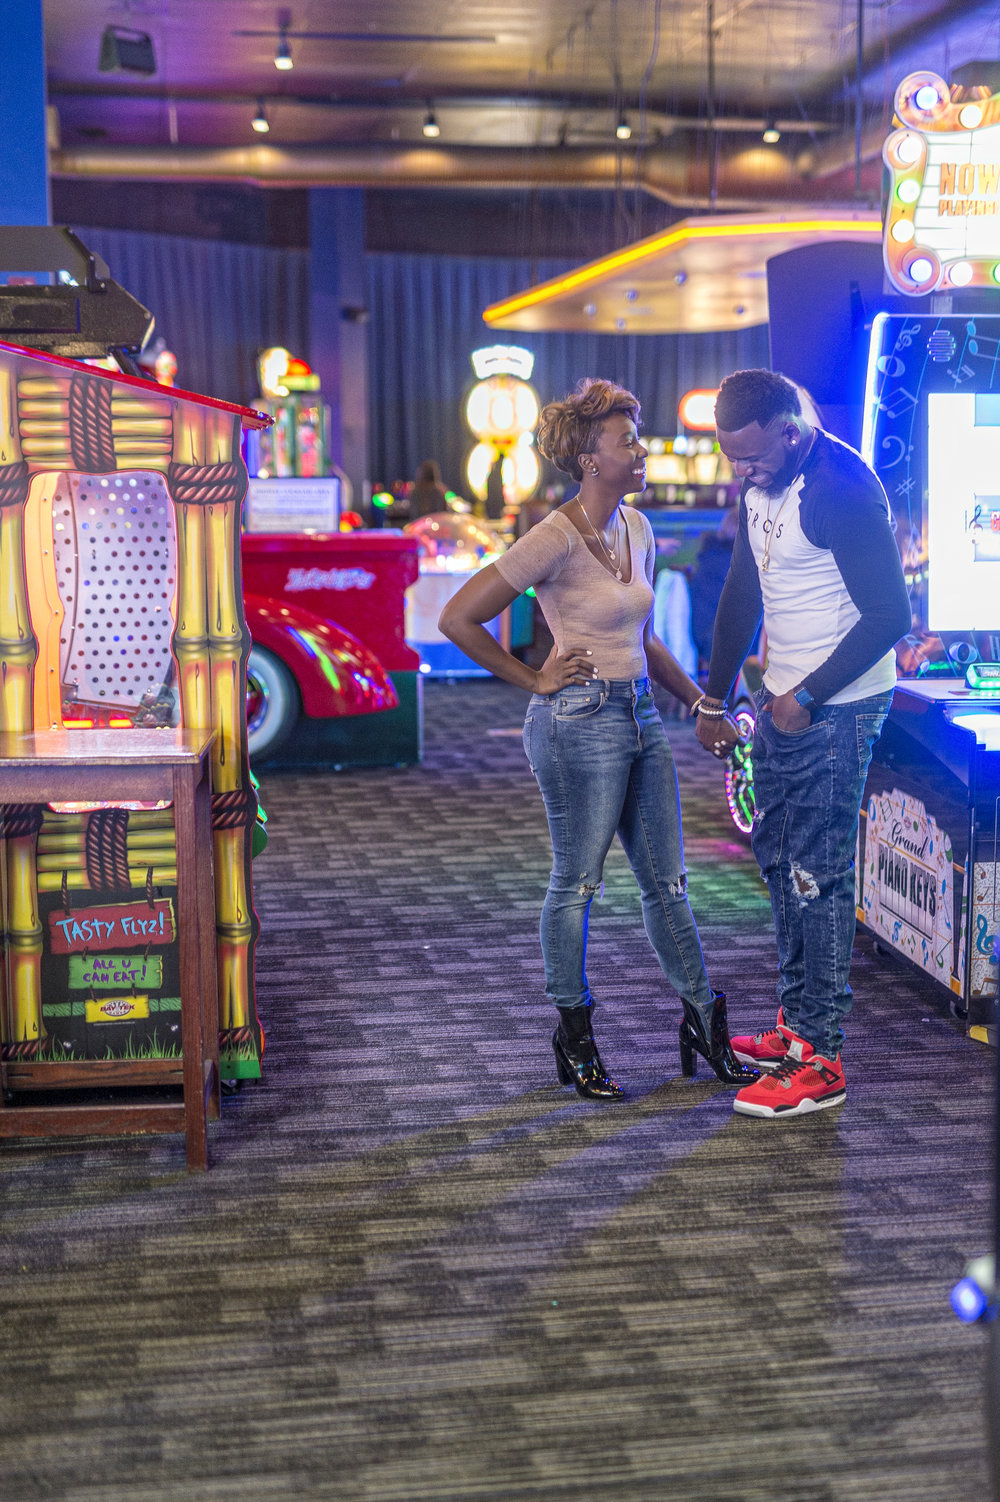 themBoldens_dave-and-busters-black-love-3.jpg